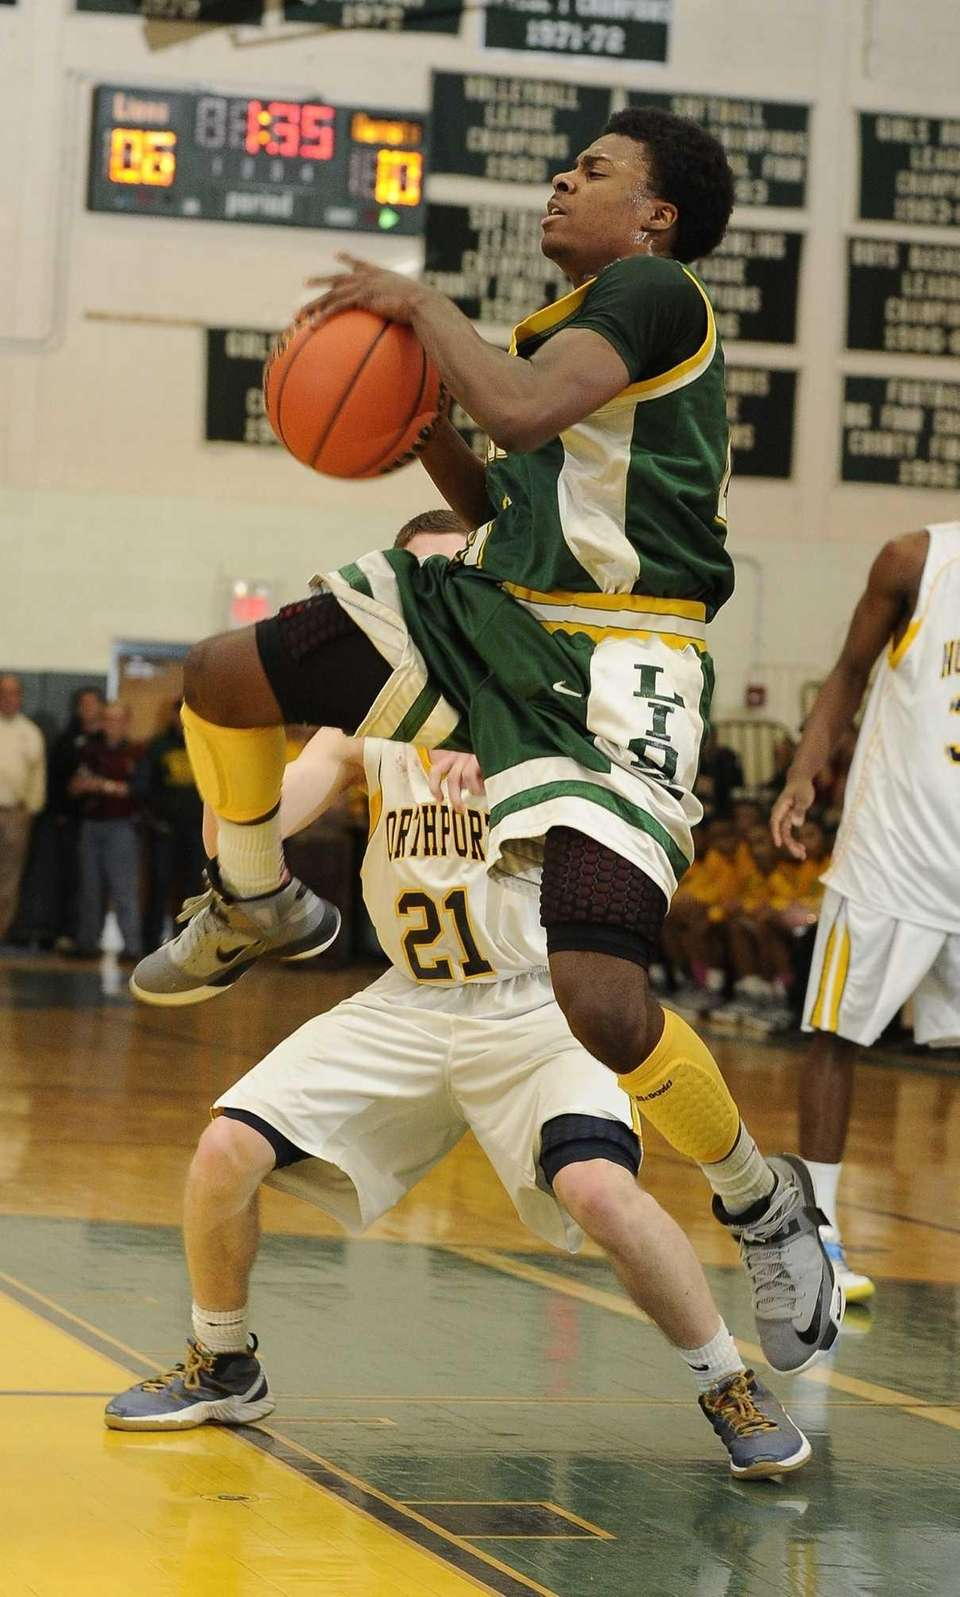 Longwood's Latrell Washington drives against Northport in the